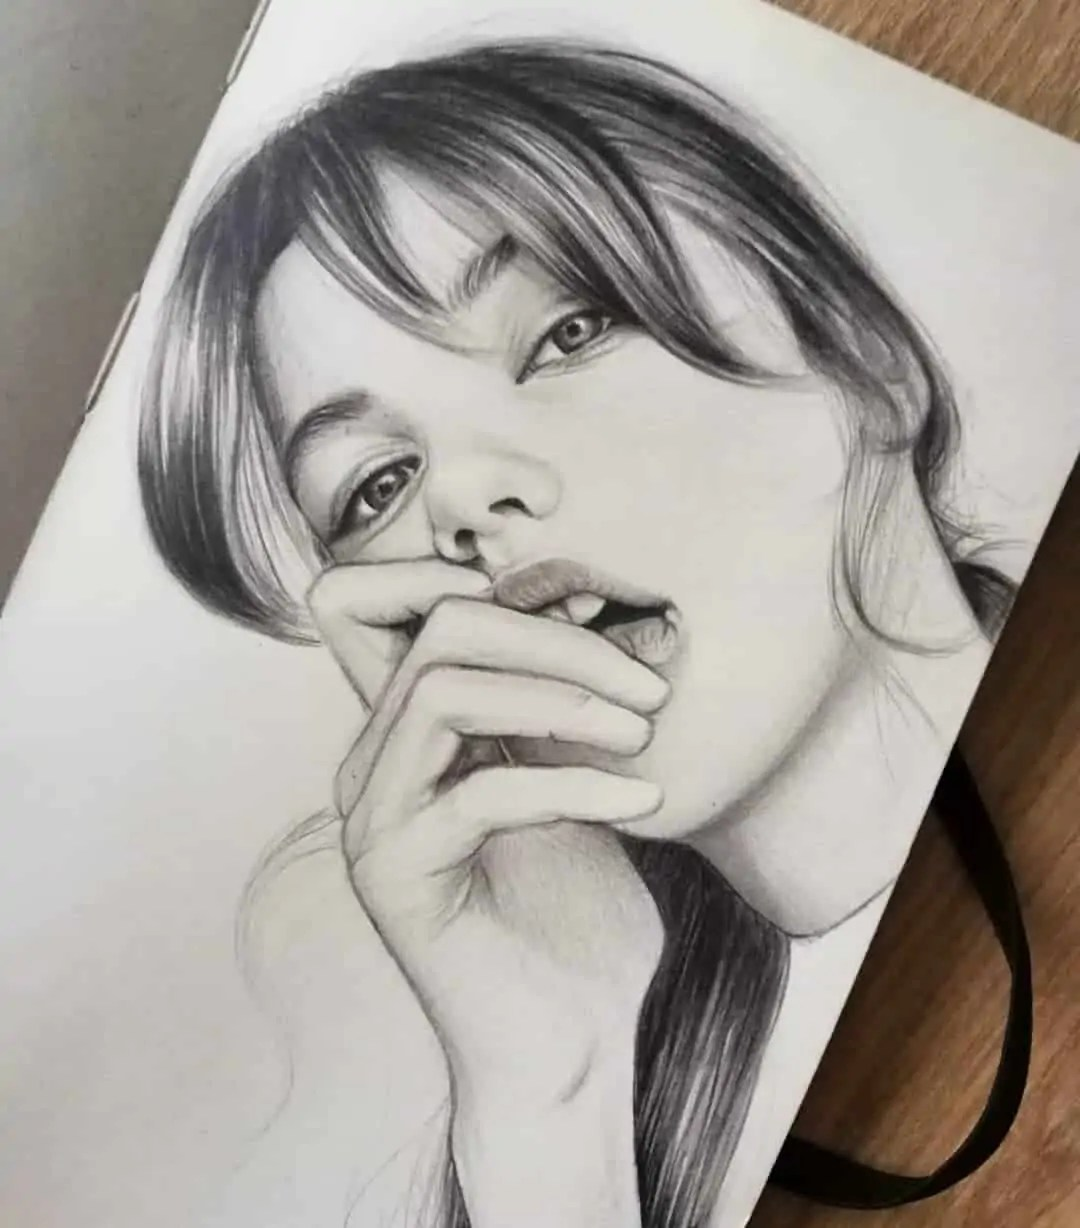 100+ Stunning Realistic Portrait Drawings 247